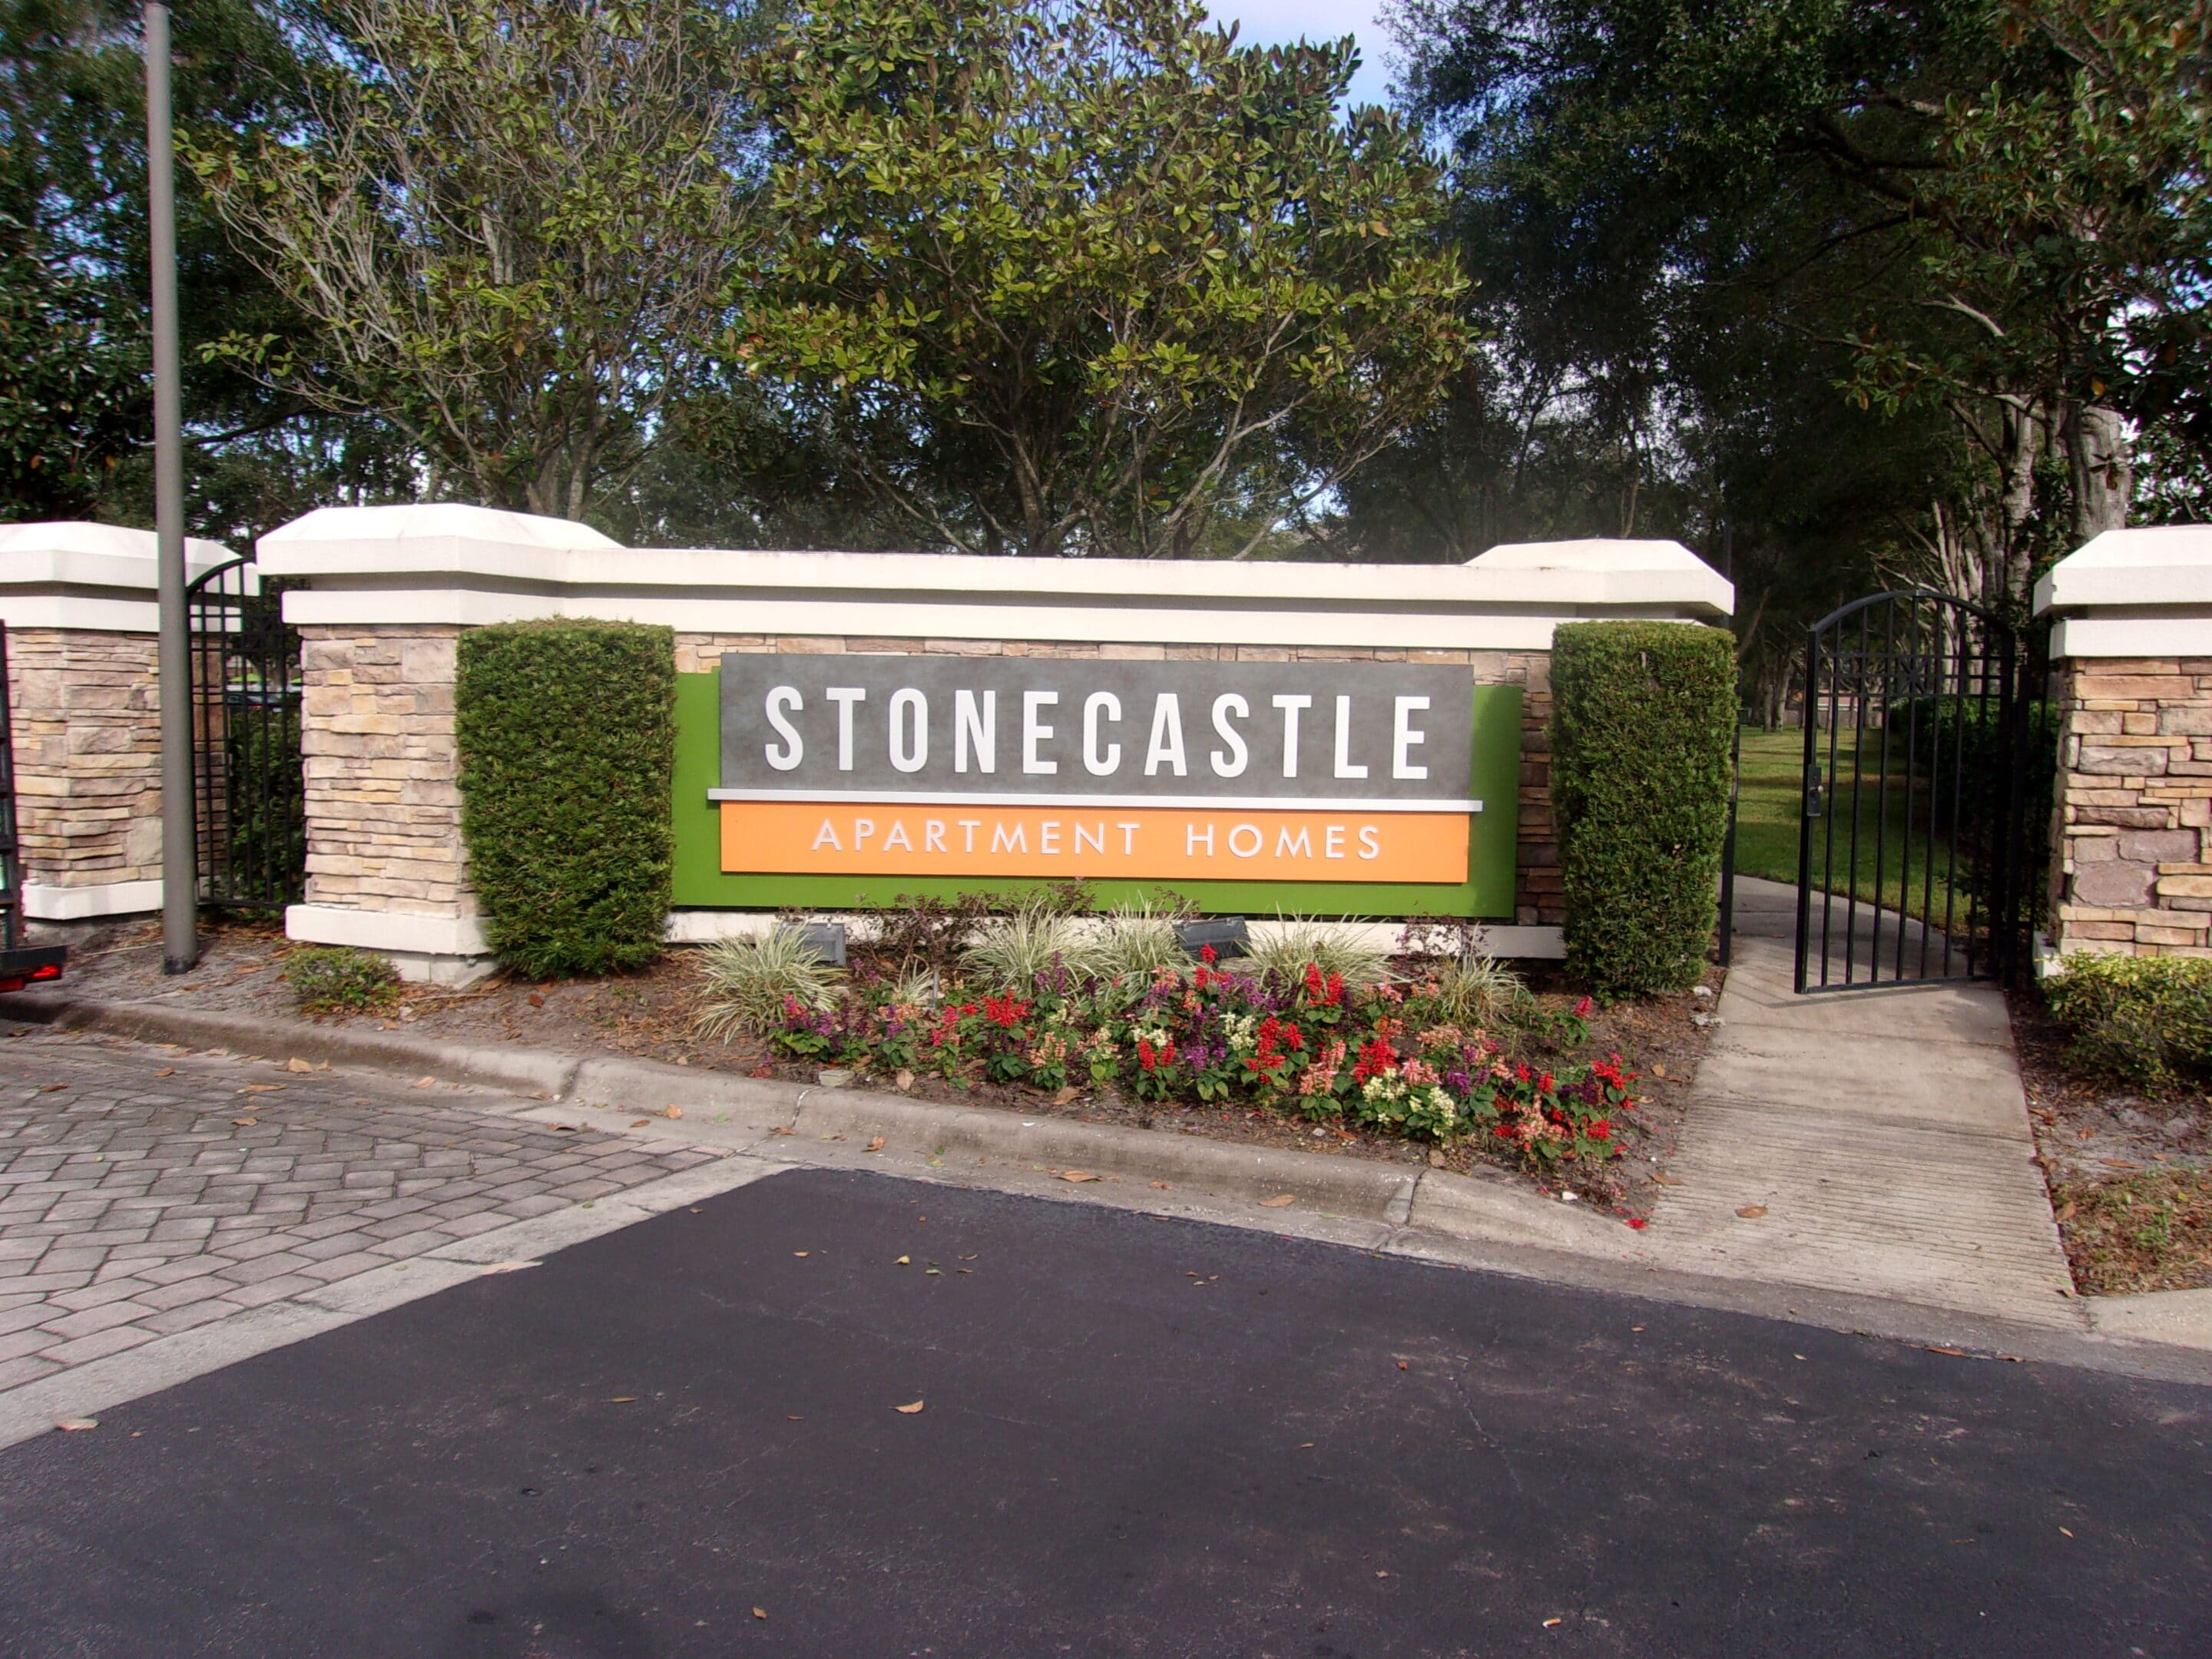 Stonecastle Apartment Homes Monument Sign